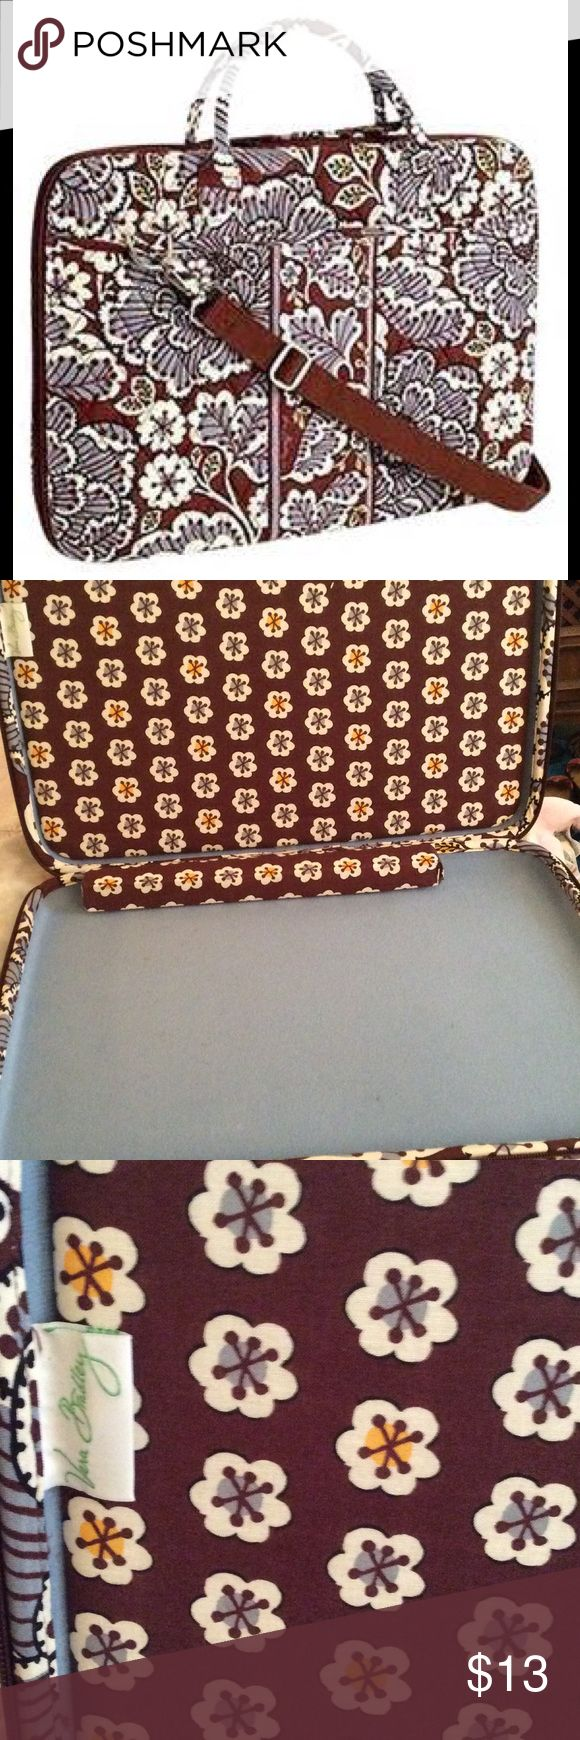 Vera Bradley Laptop Case Used once or twice, clean no stains, rips or tears Vera Bradley Bags Laptop Bags